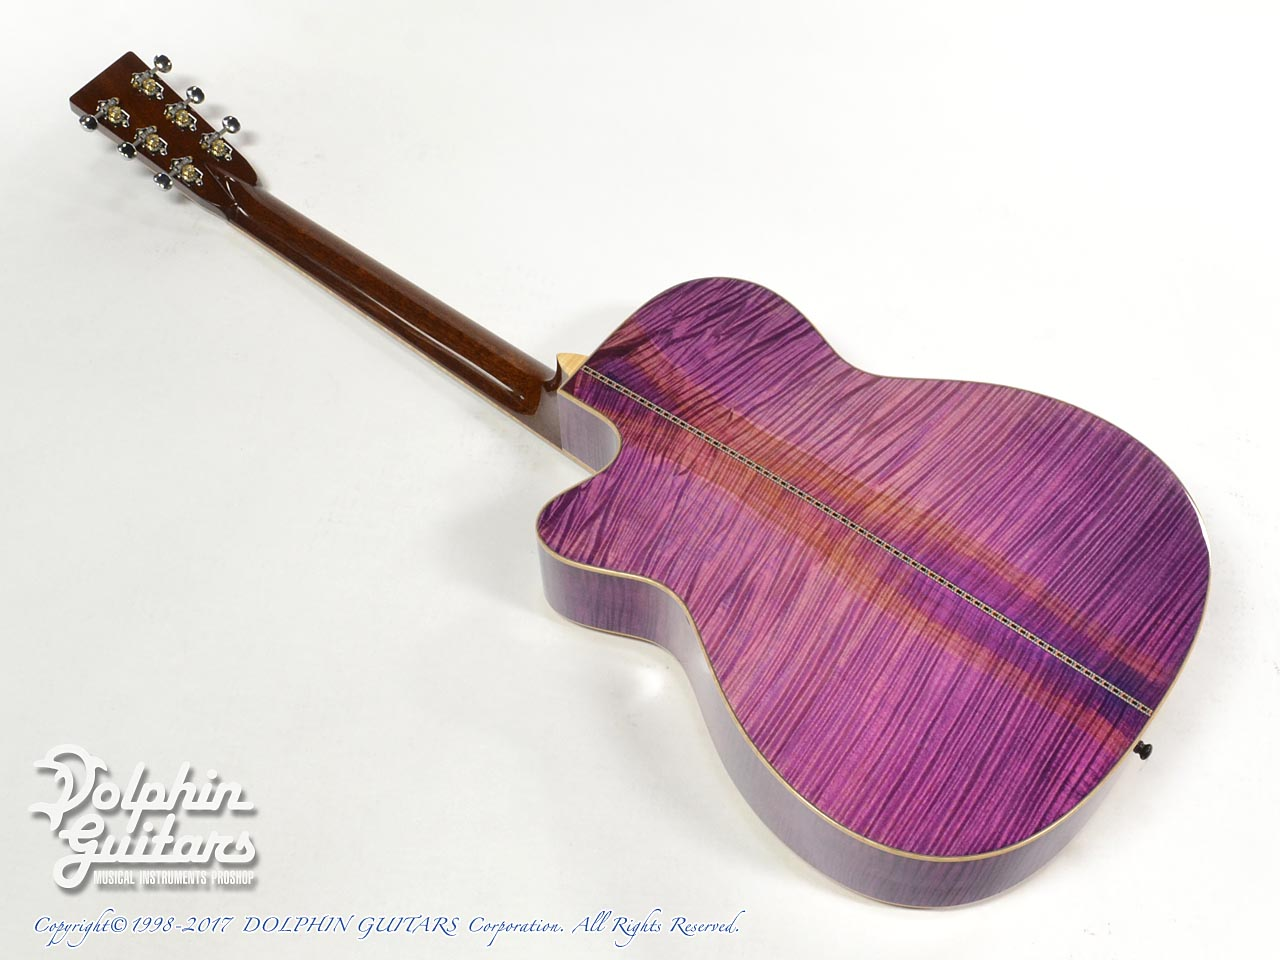 SWITCH: SCOM-3C E-FM (Engelmann Spruce & Flame Maple) (Murasakishikibu) (5)